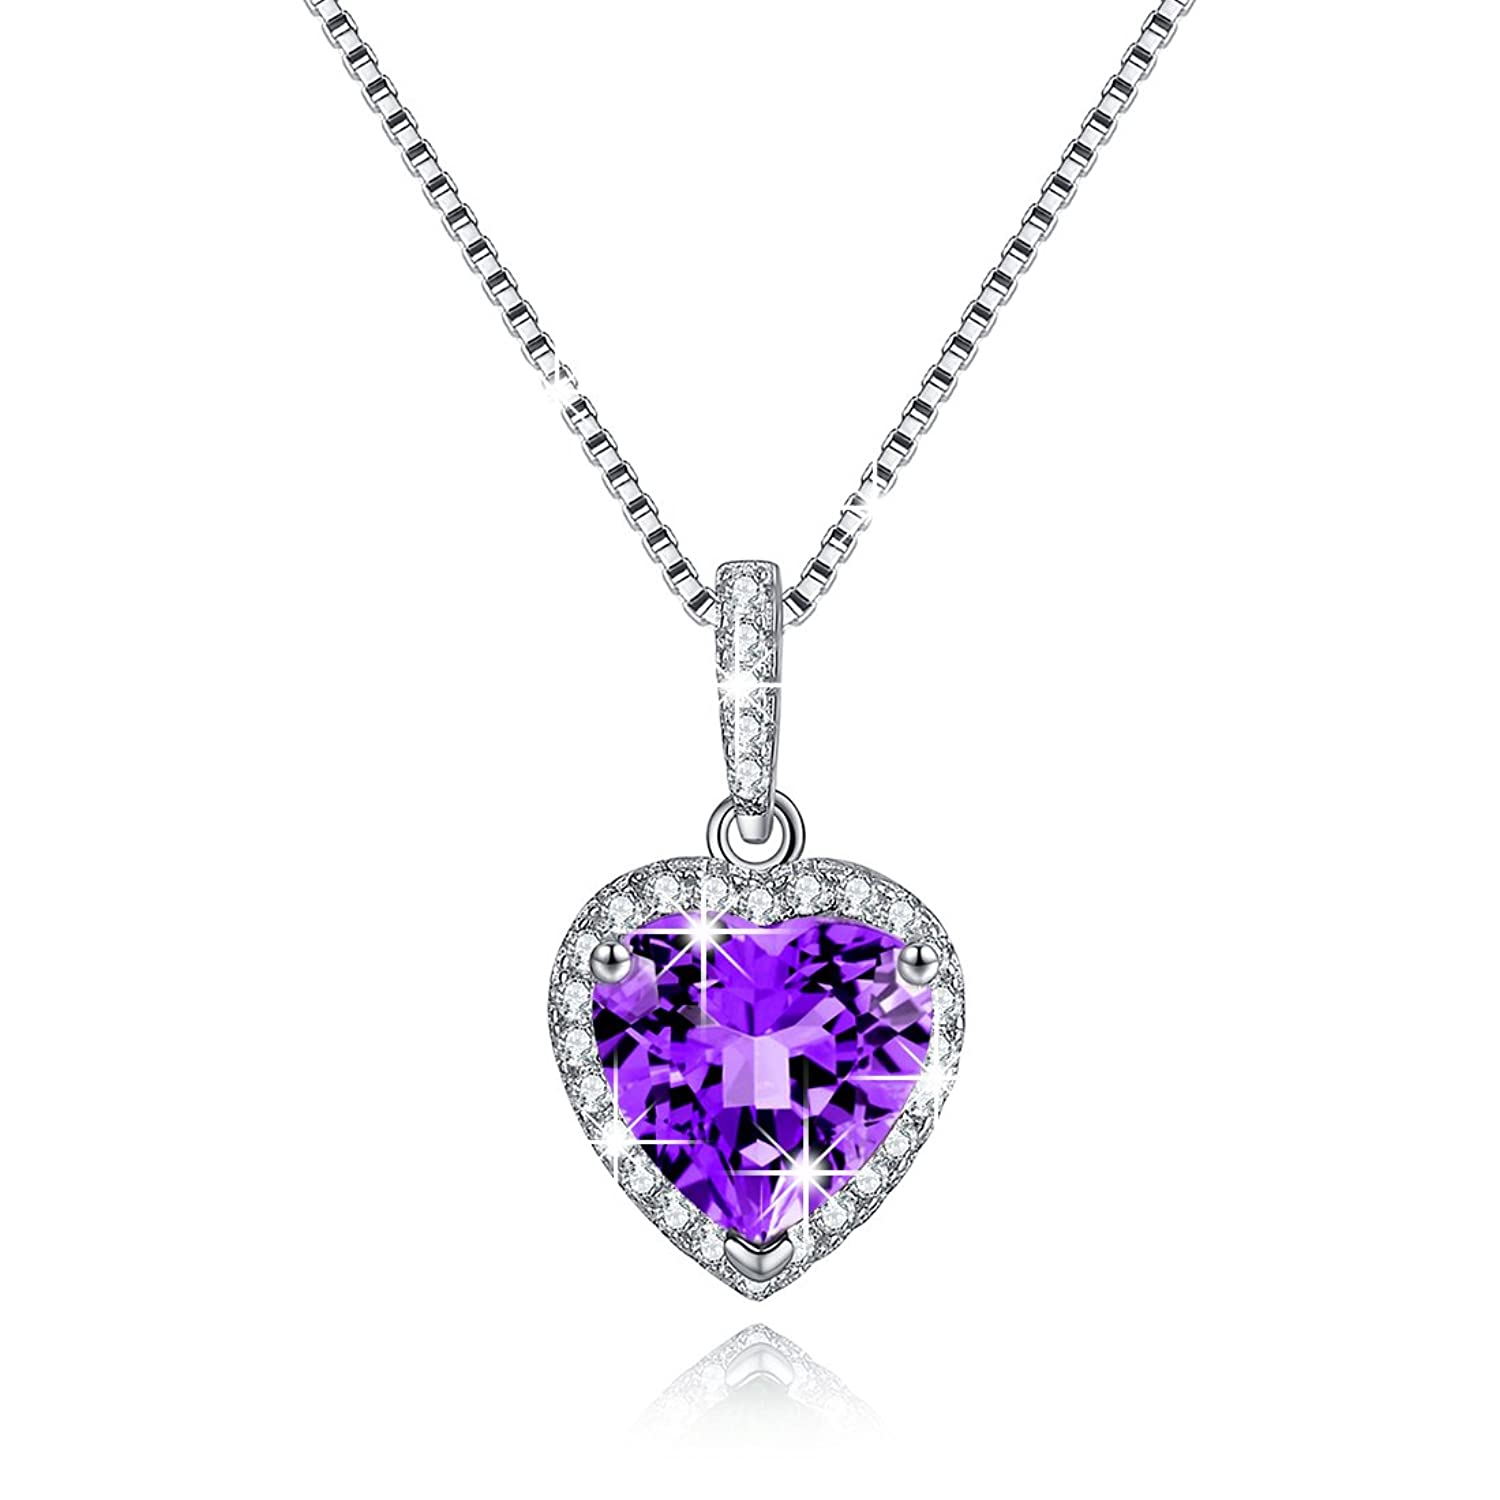 Heart Necklace Swarovski Elements Diamond Pendant Necklace Sterling Silver